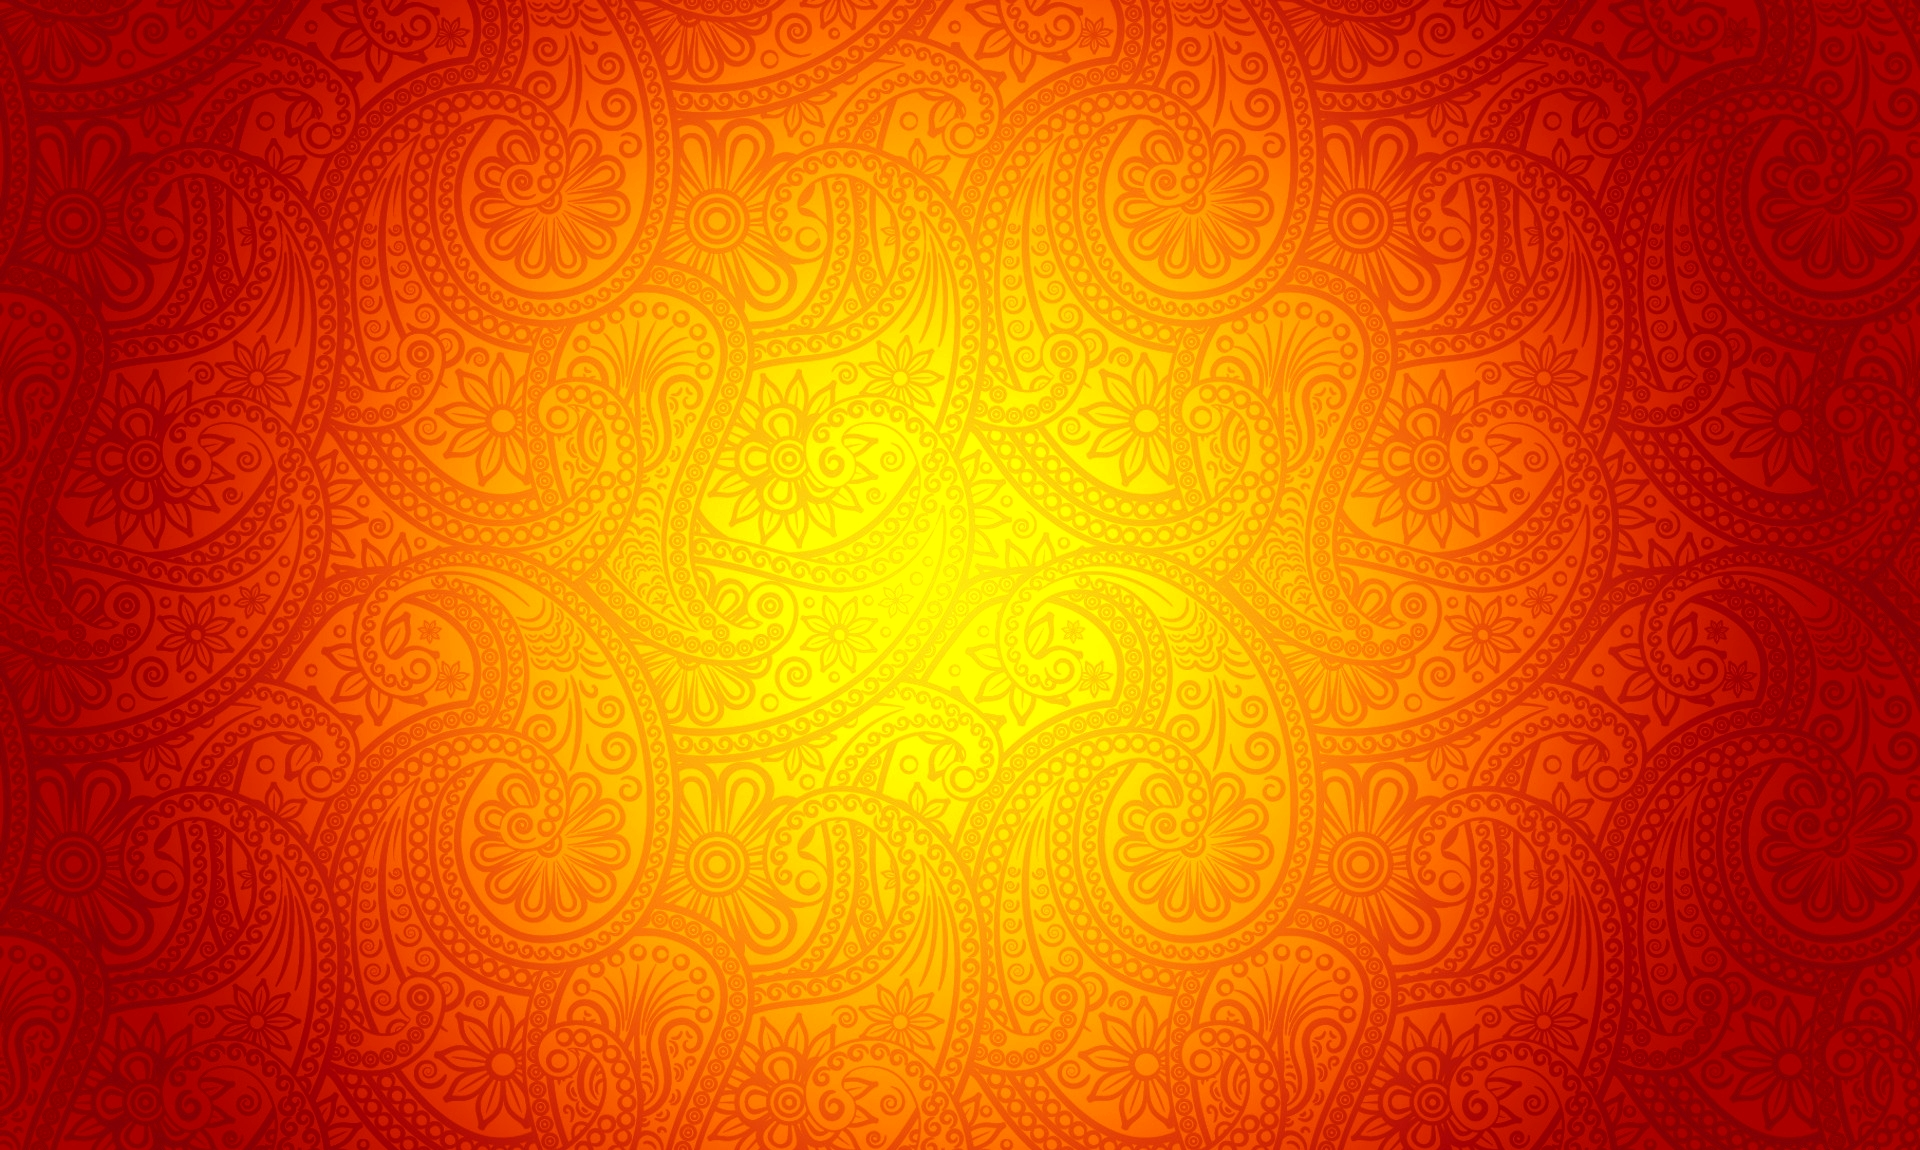 Orange Background with Ornamental Patterns Manarat Al Tibyan 1920x1150